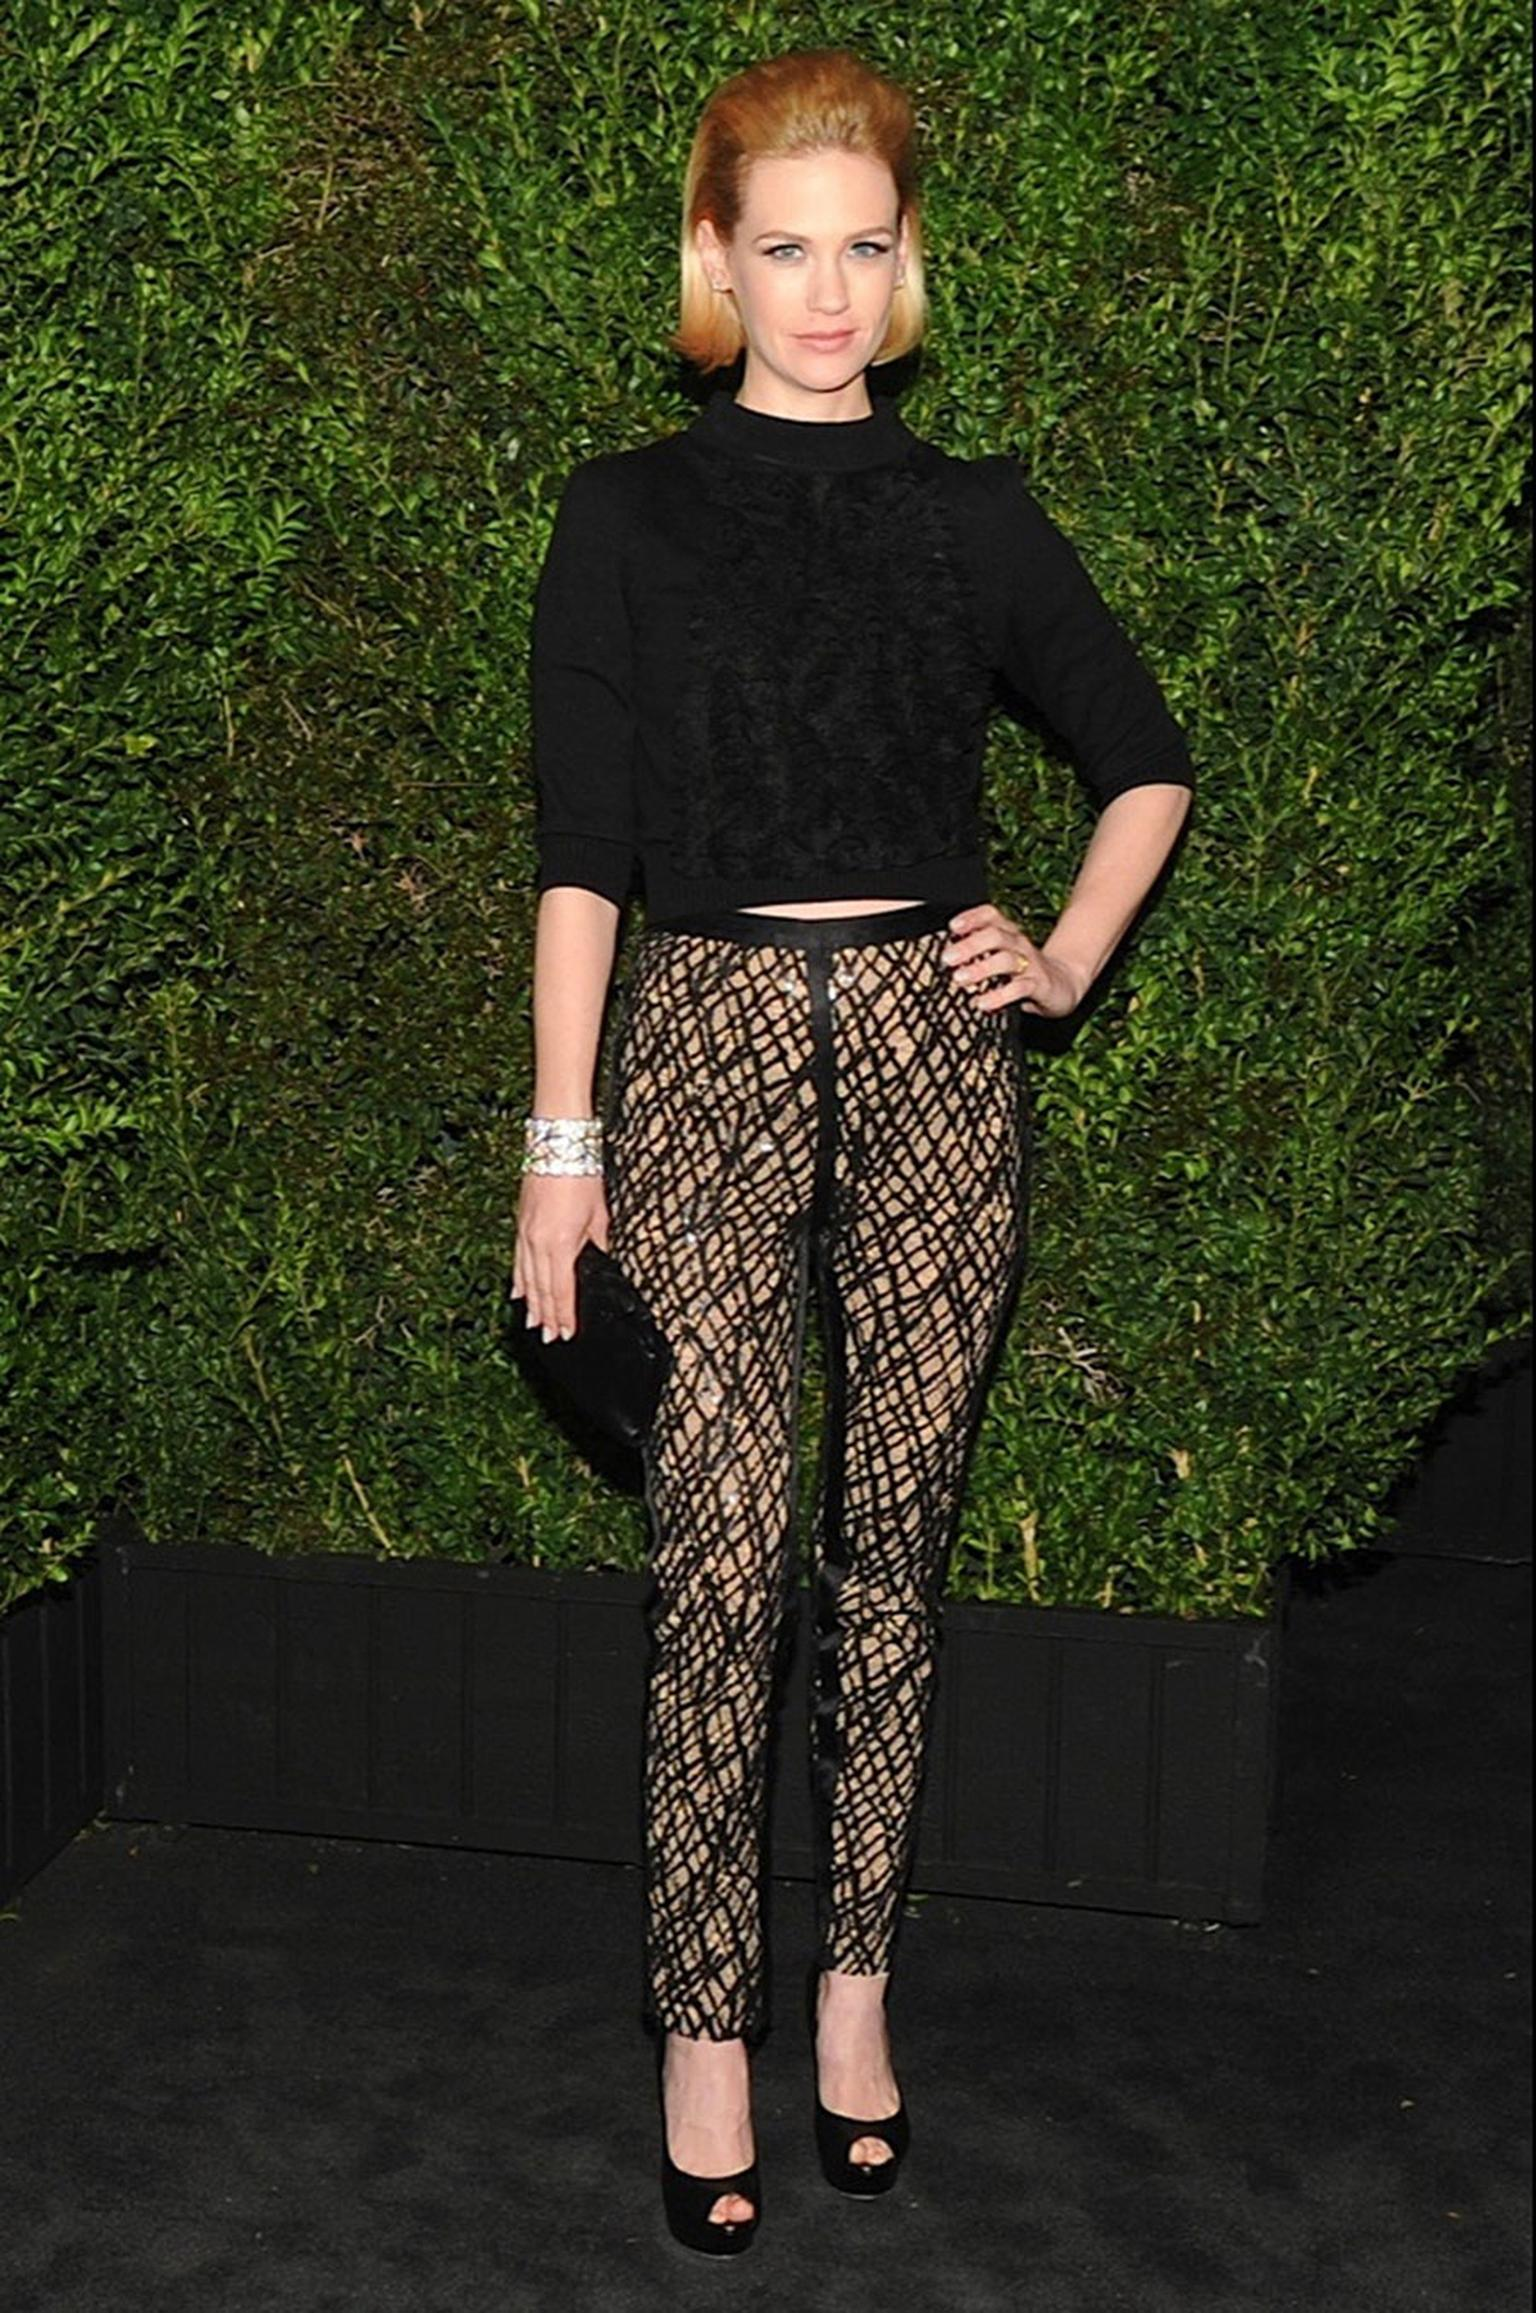 January-Jones-Chanel-and-Charles-Finch-Oscars-Dinner-23-fevrier-2013.jpg